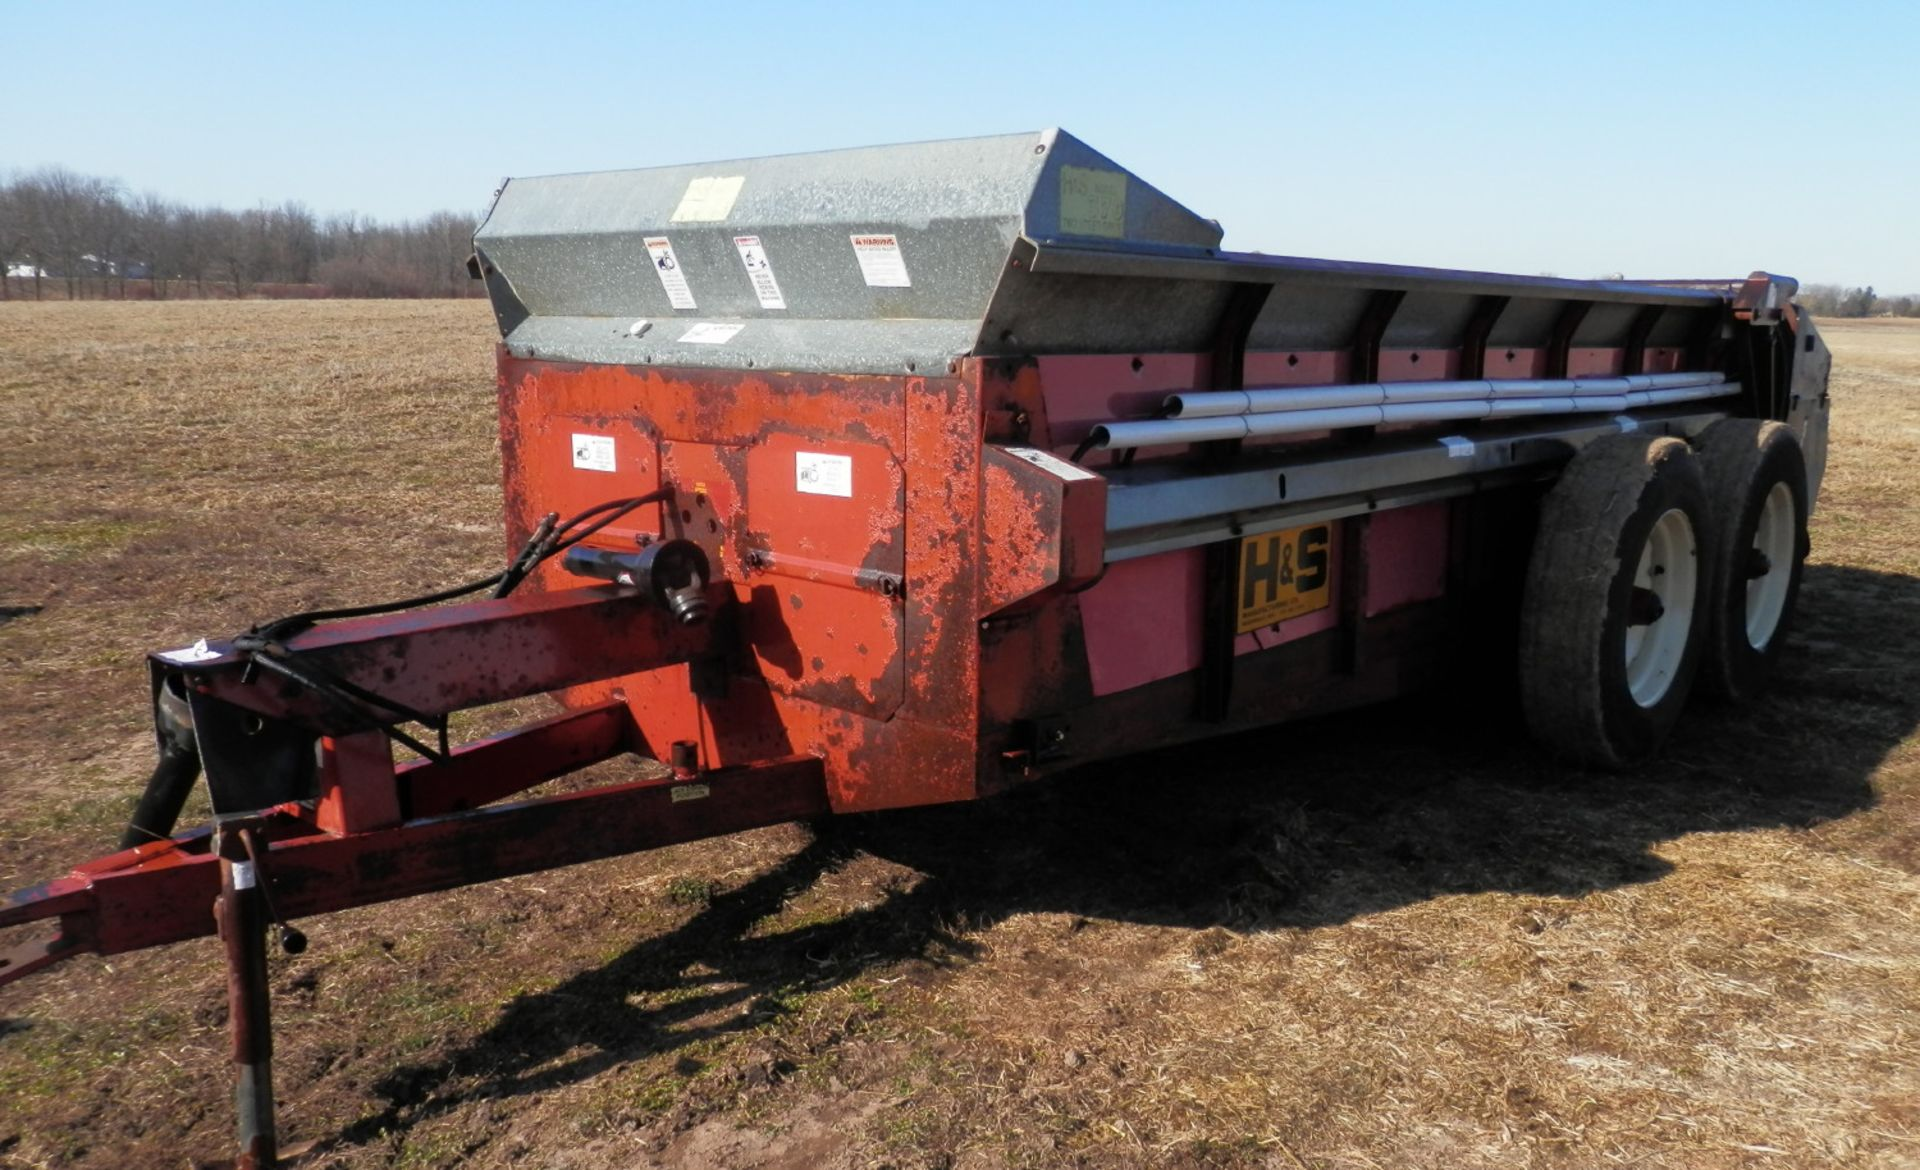 H&S 370 TANDEM AXLE MANURE SPREADER - Image 4 of 8